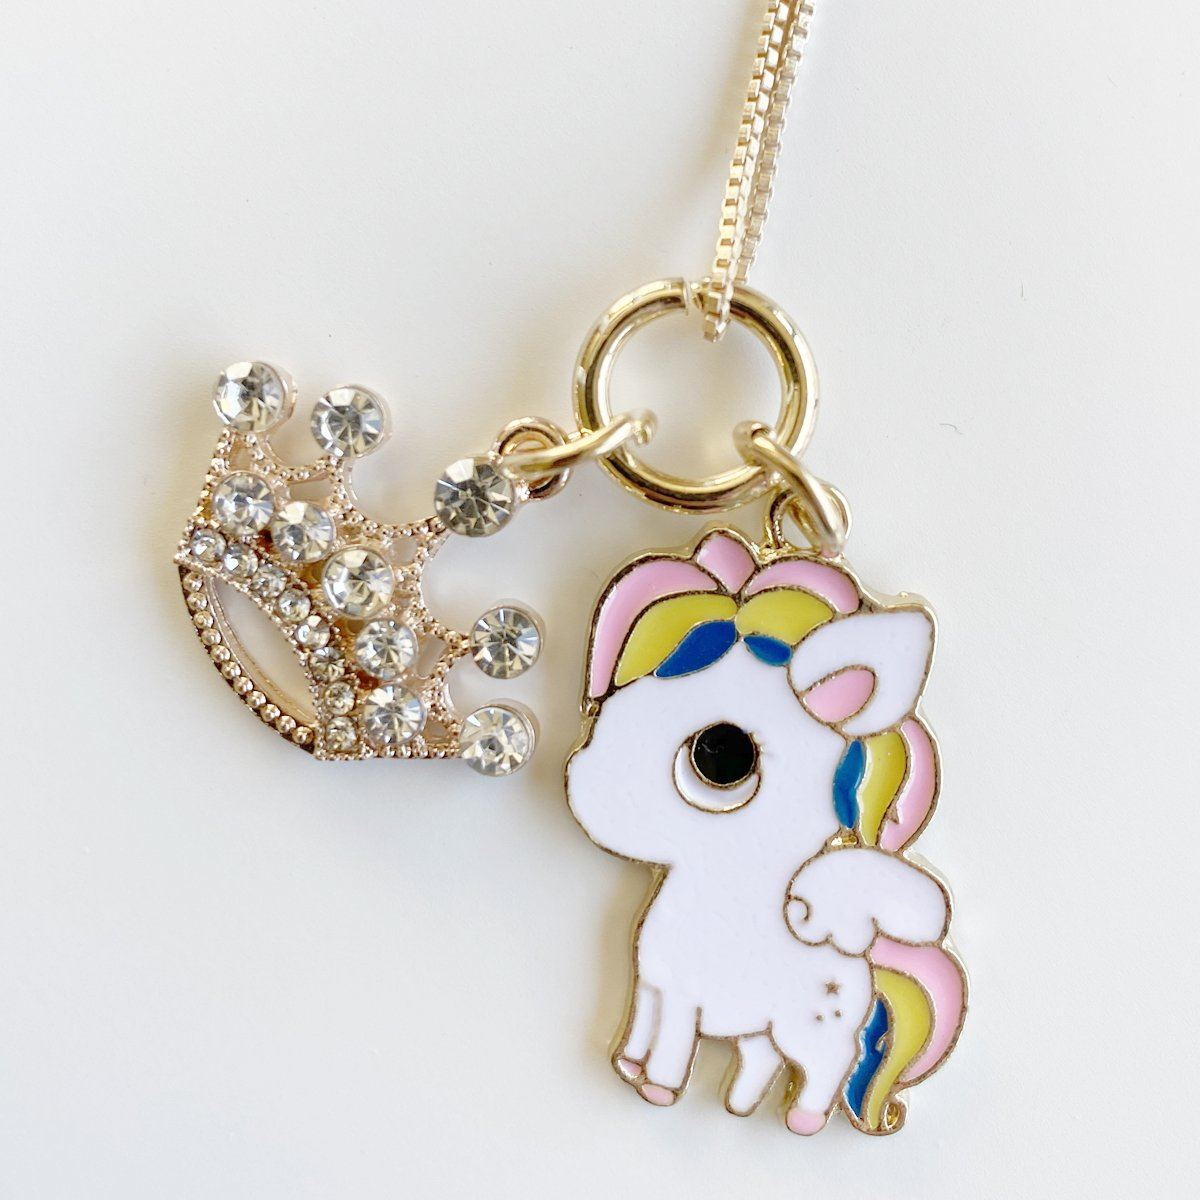 Unicorn & Crown Charm Necklace